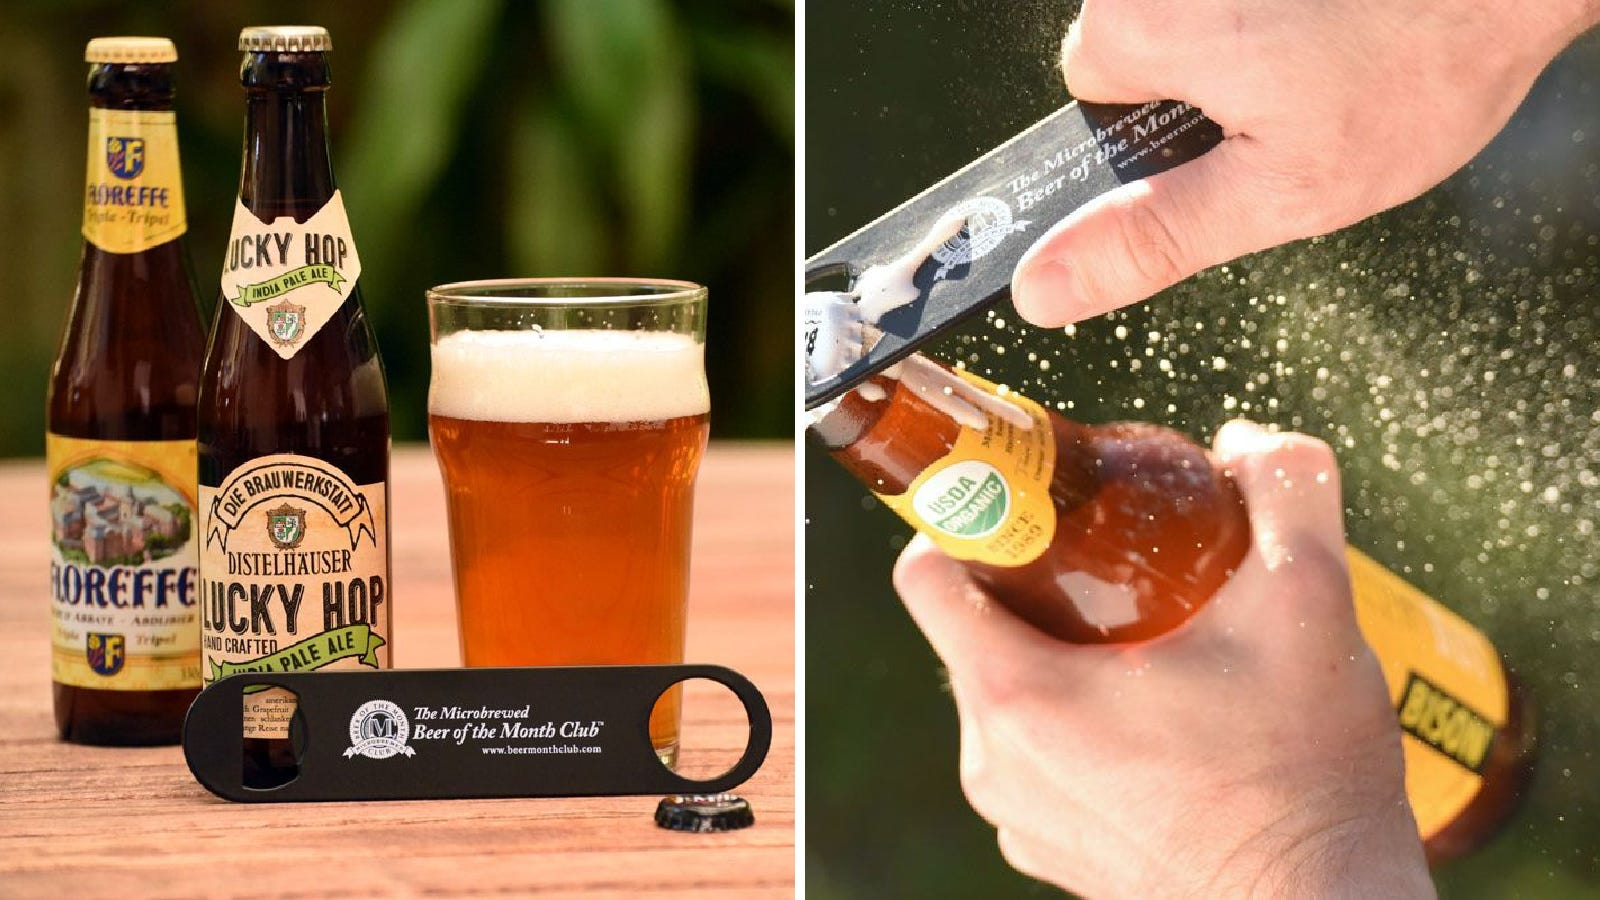 Two images featuring beer of the month club subscription, which various bottles of beers to try.